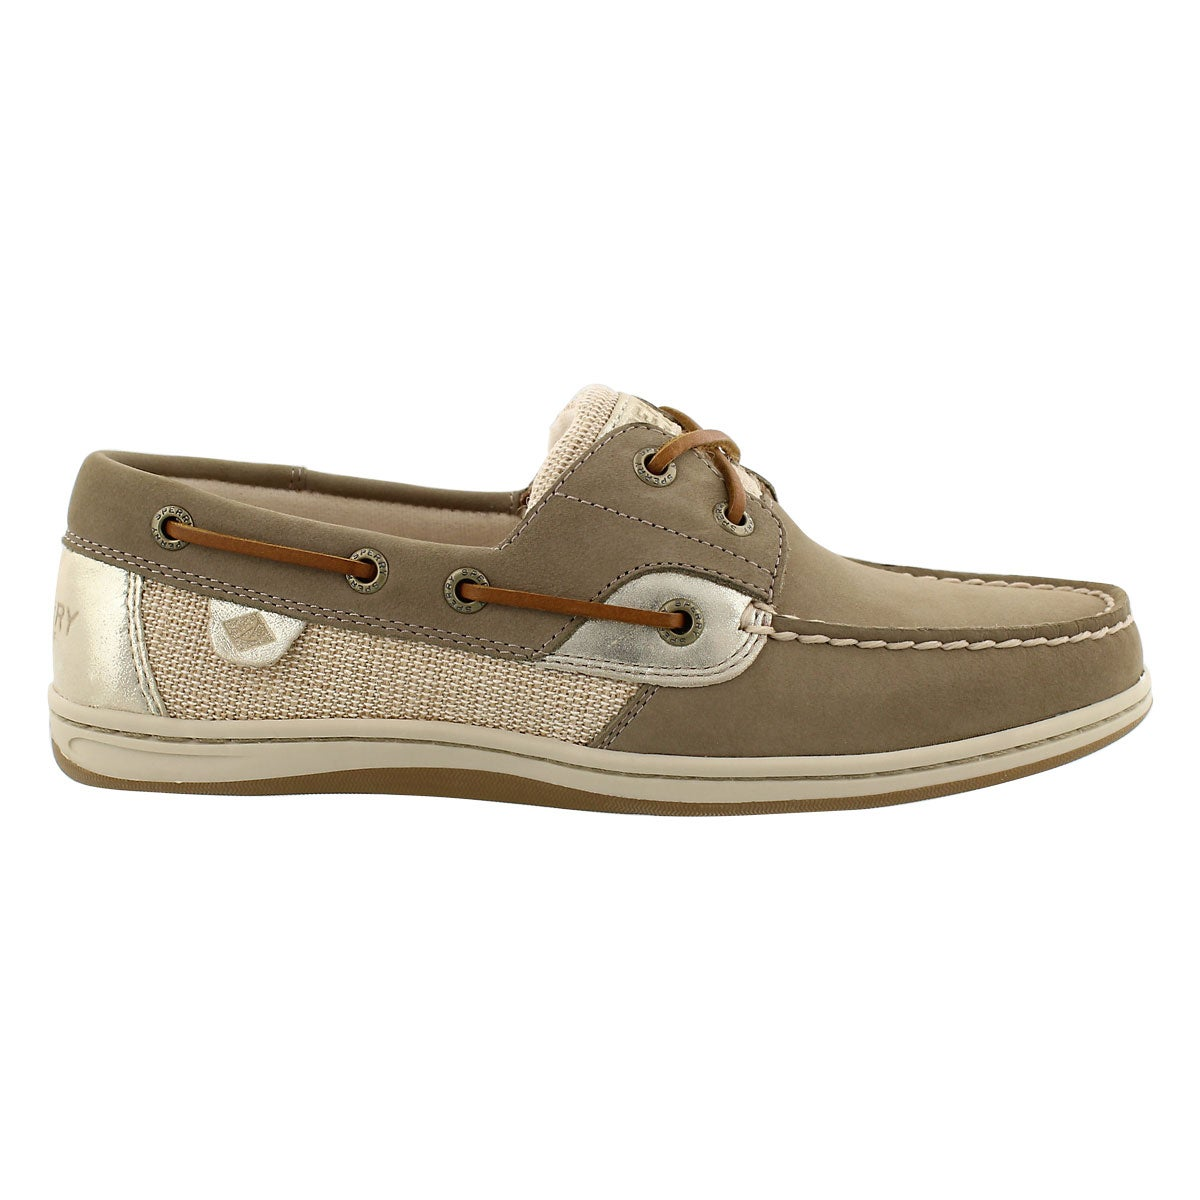 Lds Koifish Metallic taupe boat shoe